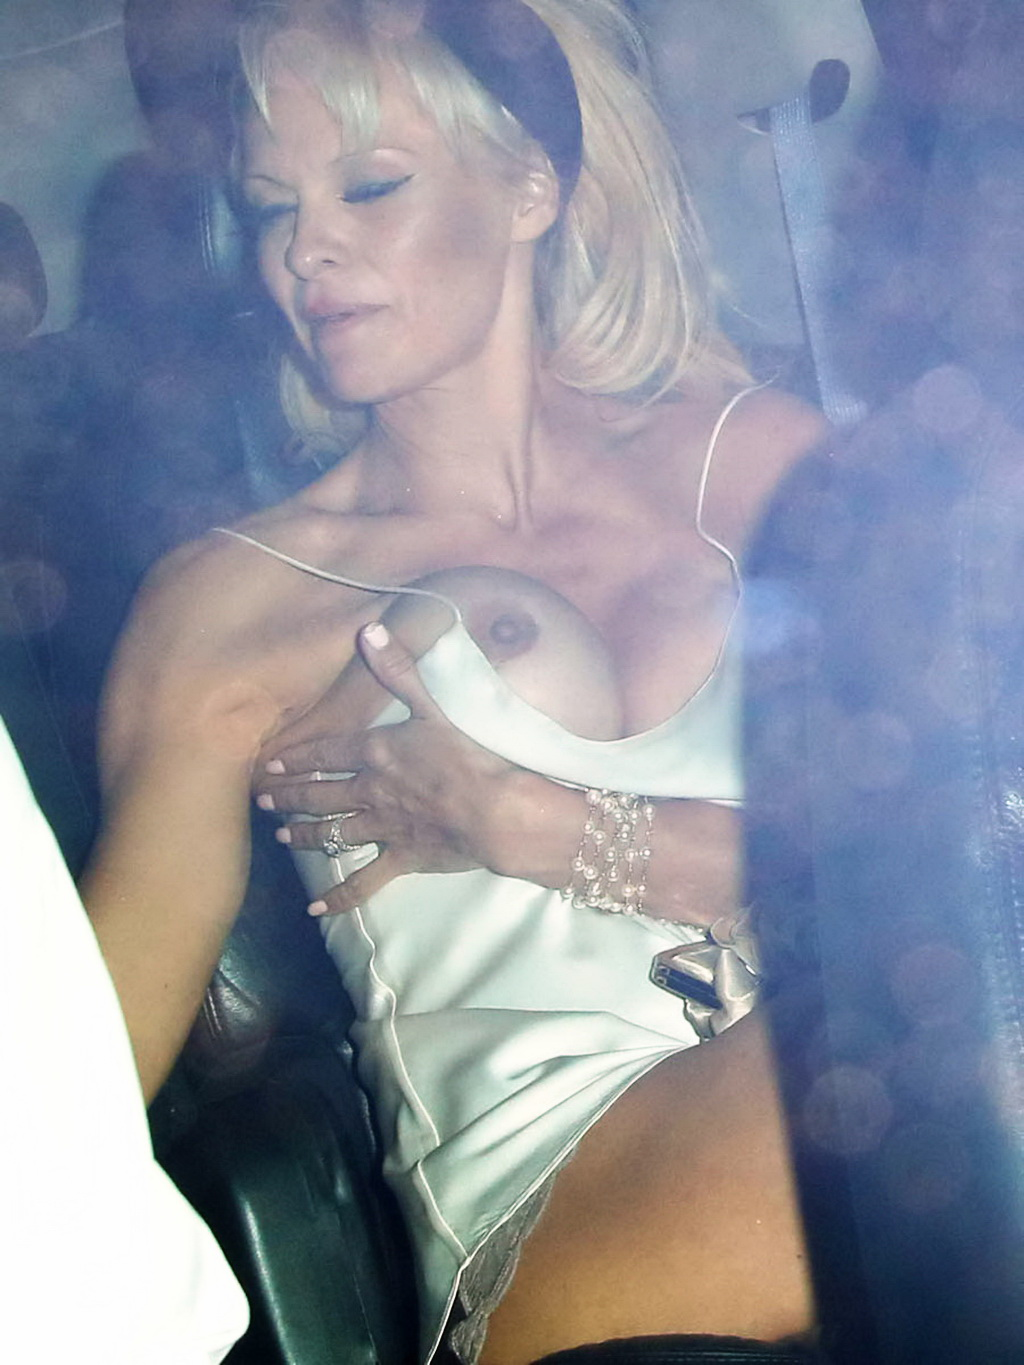 pam anderson free nude pics